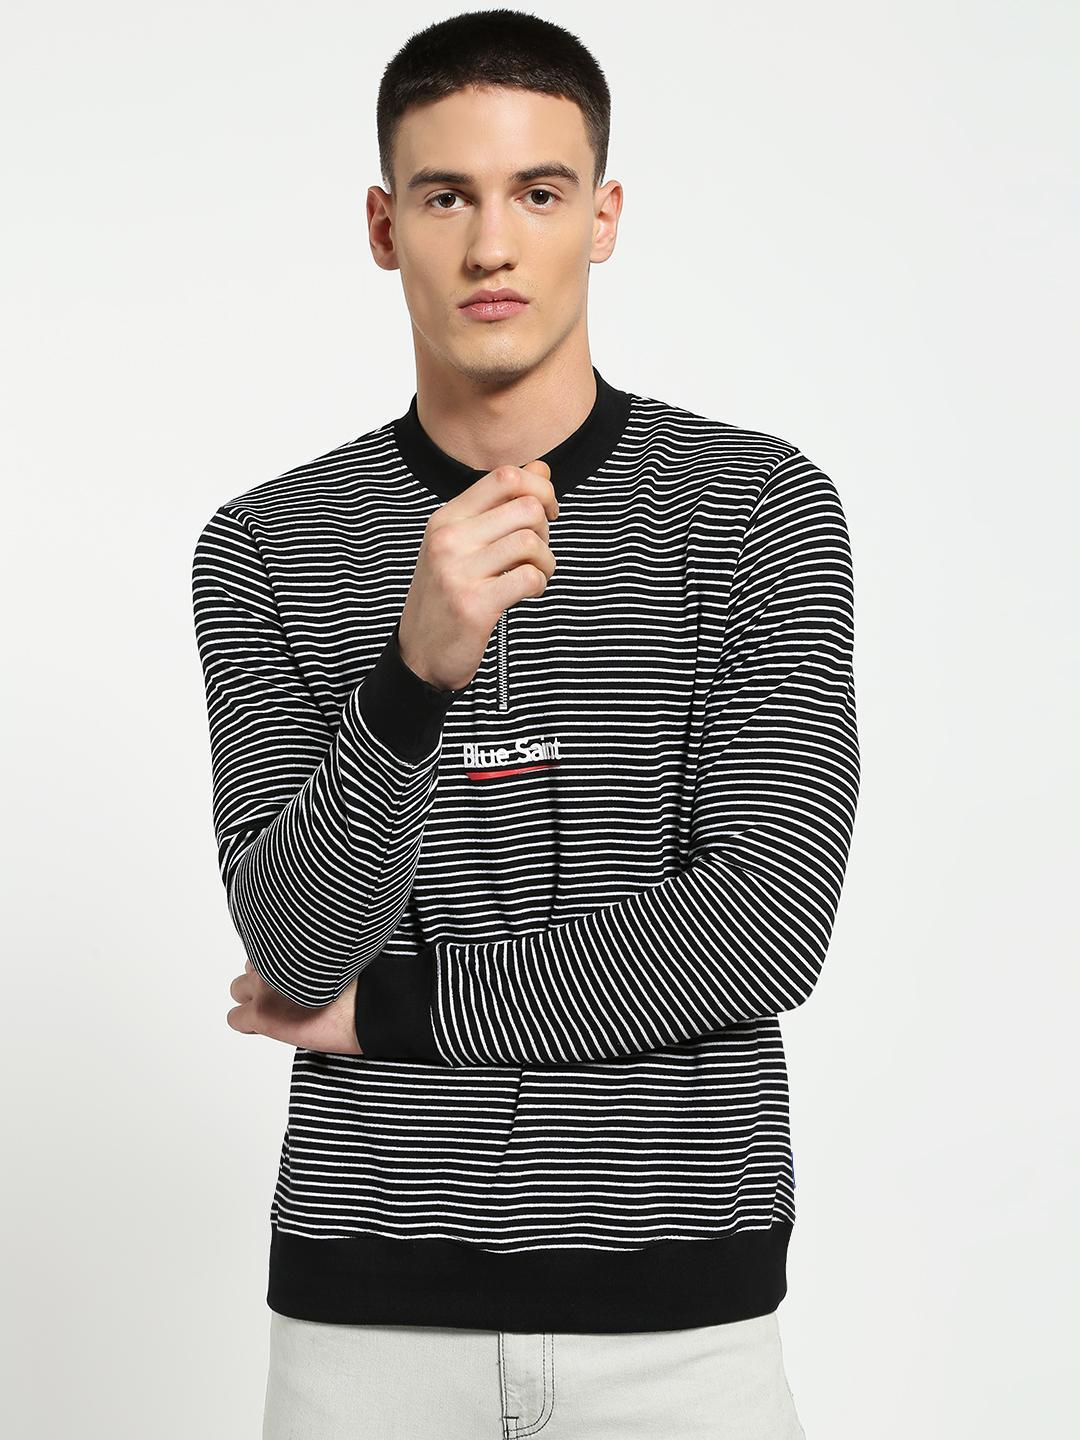 Blue Saint Black Stripe Embossed Logo Zip-Up Sweatshirt 1